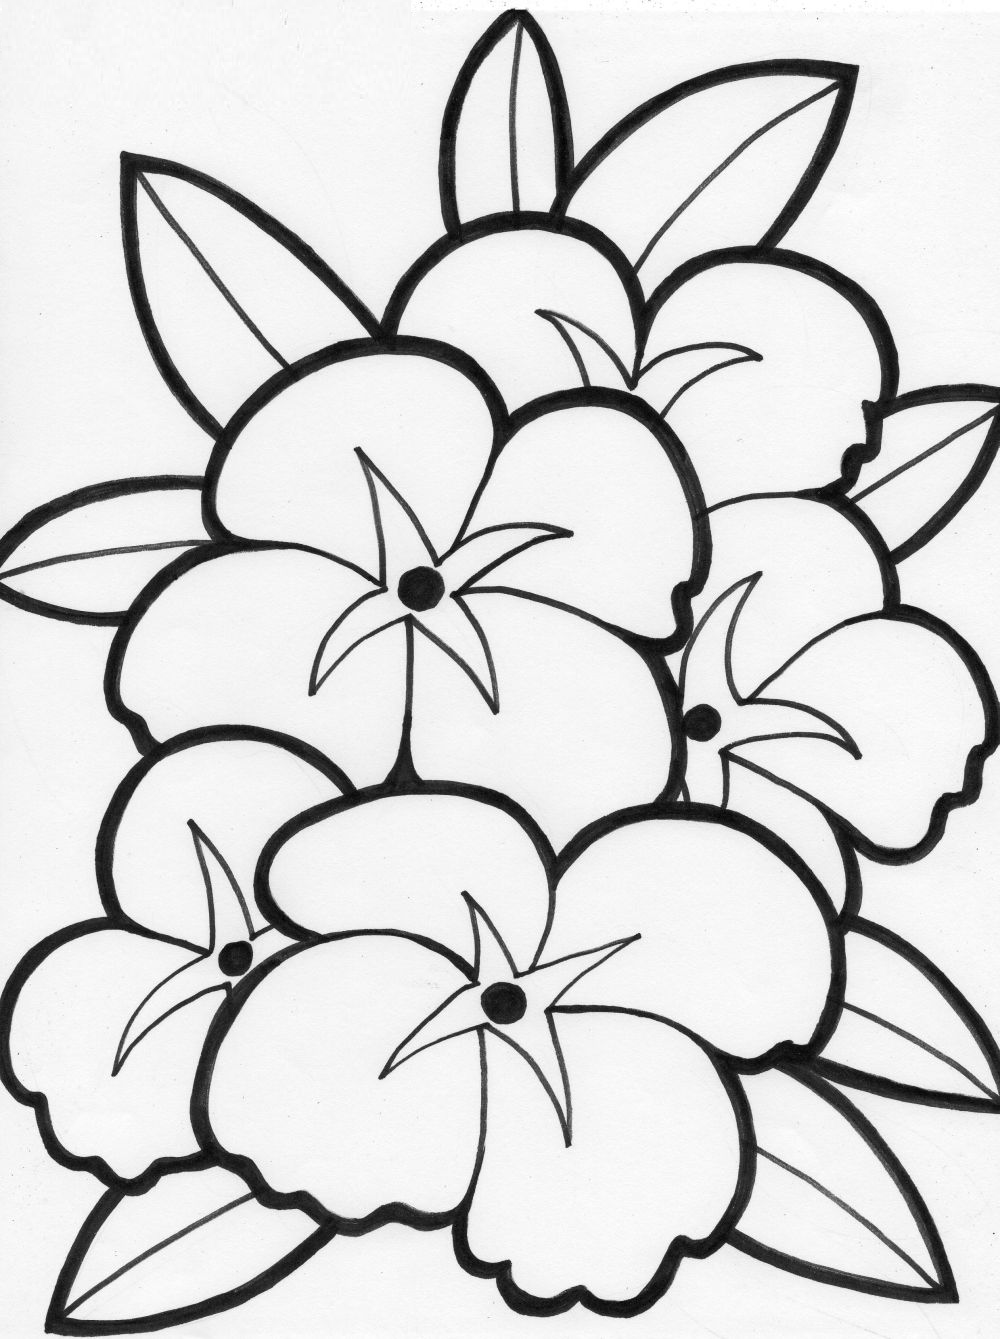 images of flowers to color free printable flower coloring pages for kids best to images of flowers color